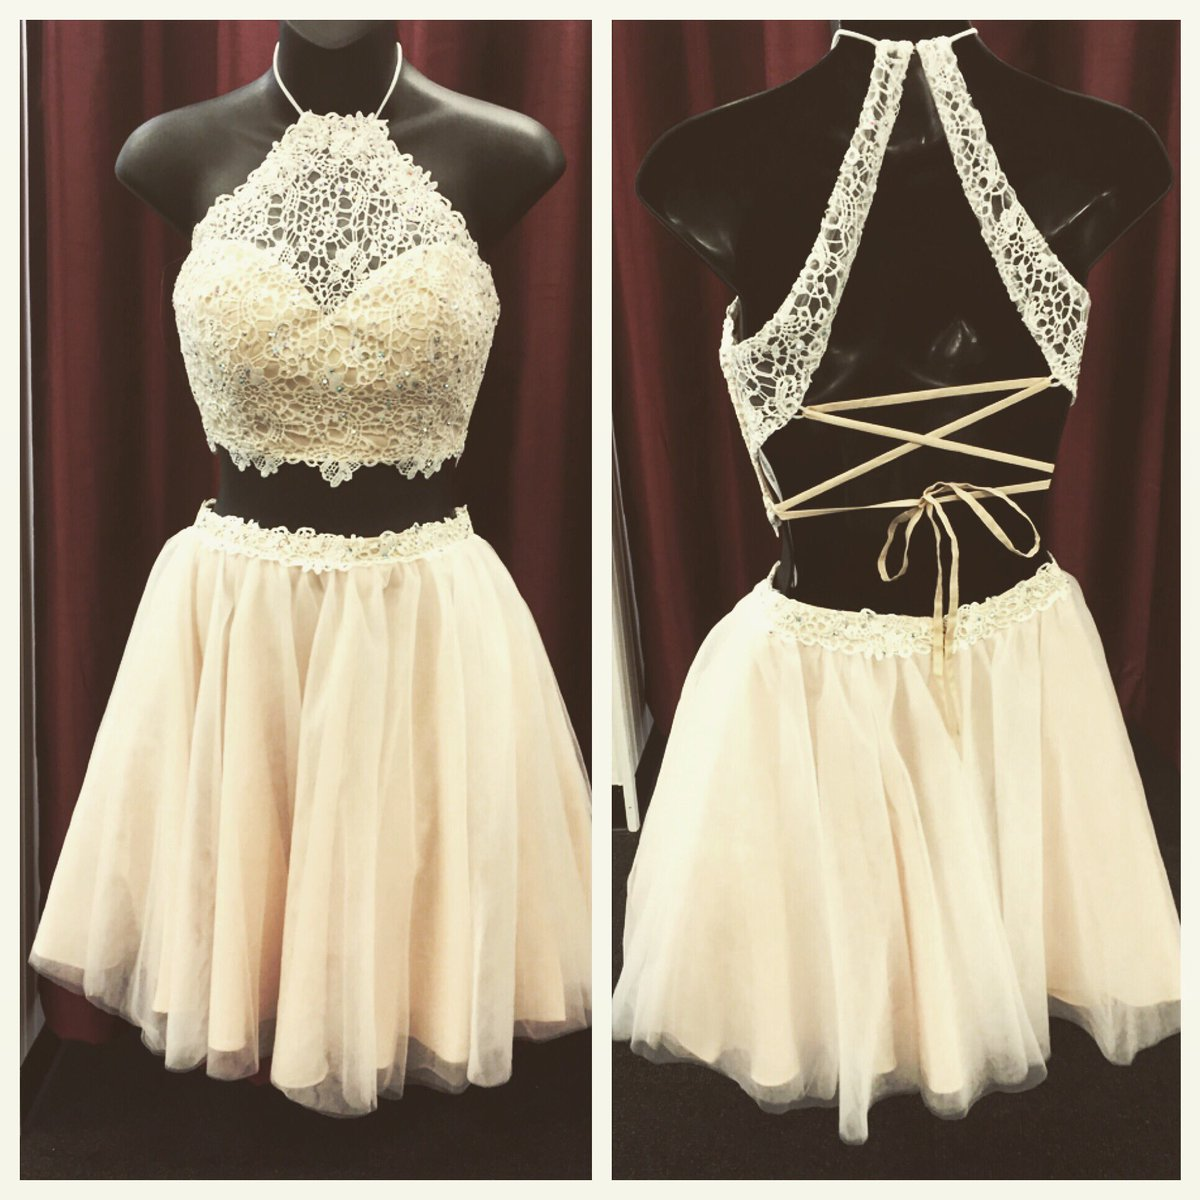 954cb07b740fe Homecoming Dresses,Two Pieces Short Prom Dresses,Backless Homecoming Dresses ,Lace Homecoming Dress